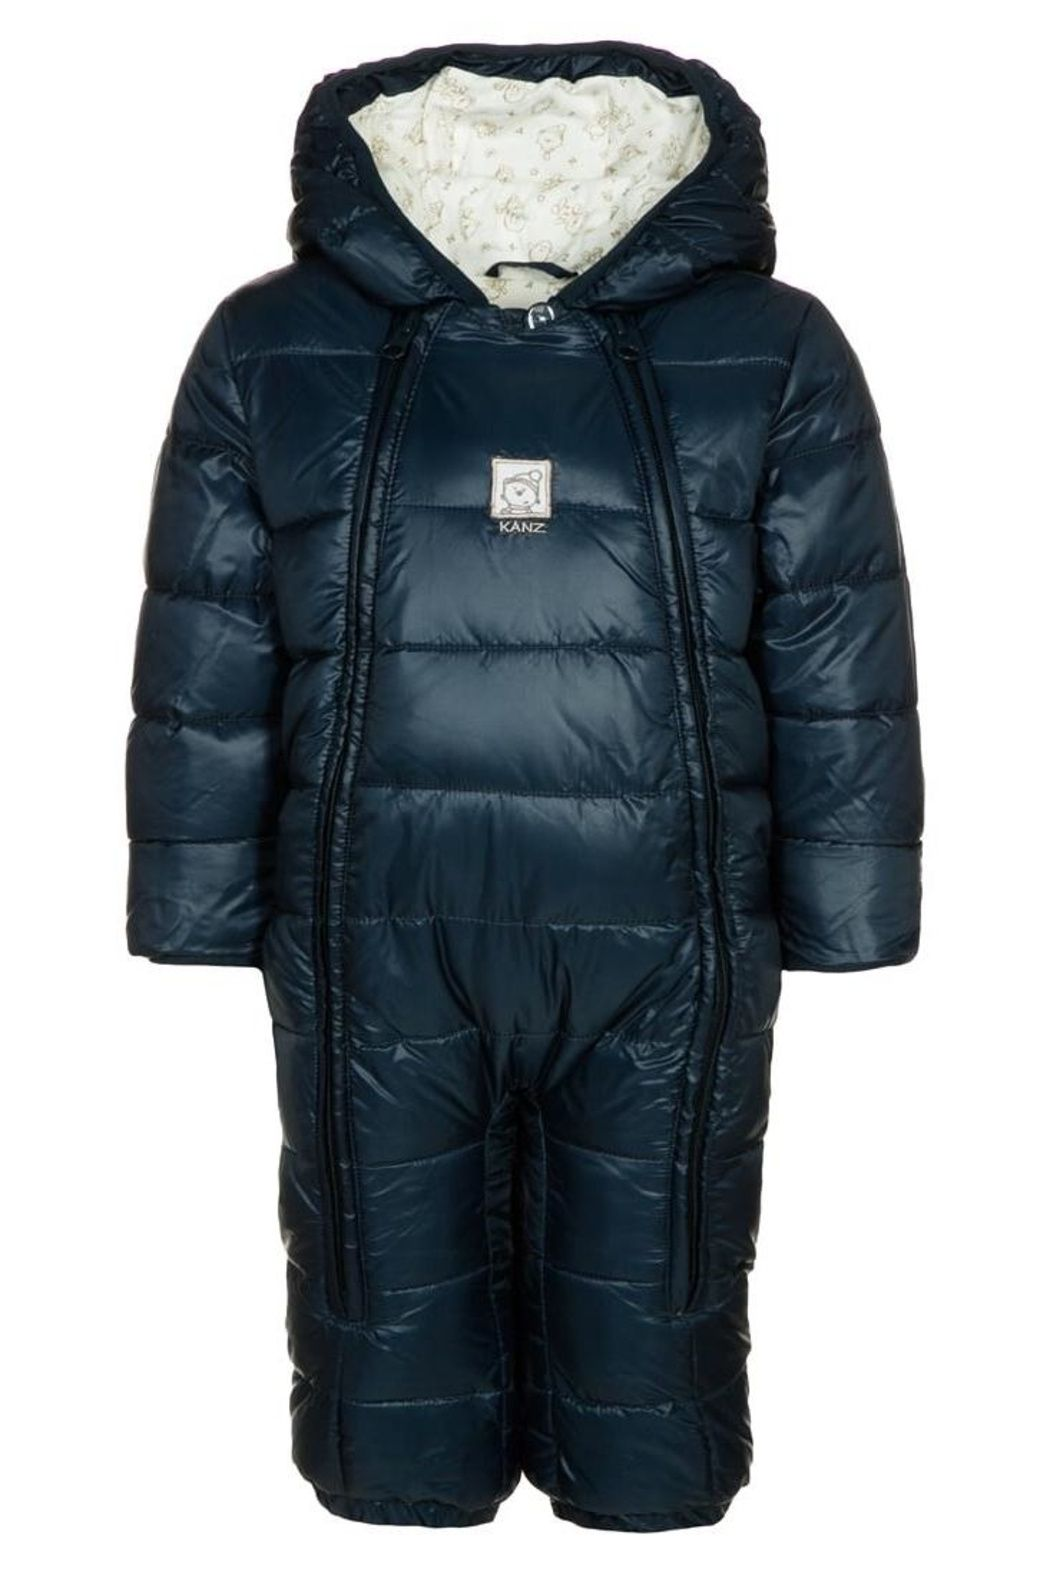 945ed5f08 Kanz Baby Hooded Snowsuit - Main Image | Baby Boy Outwear ...